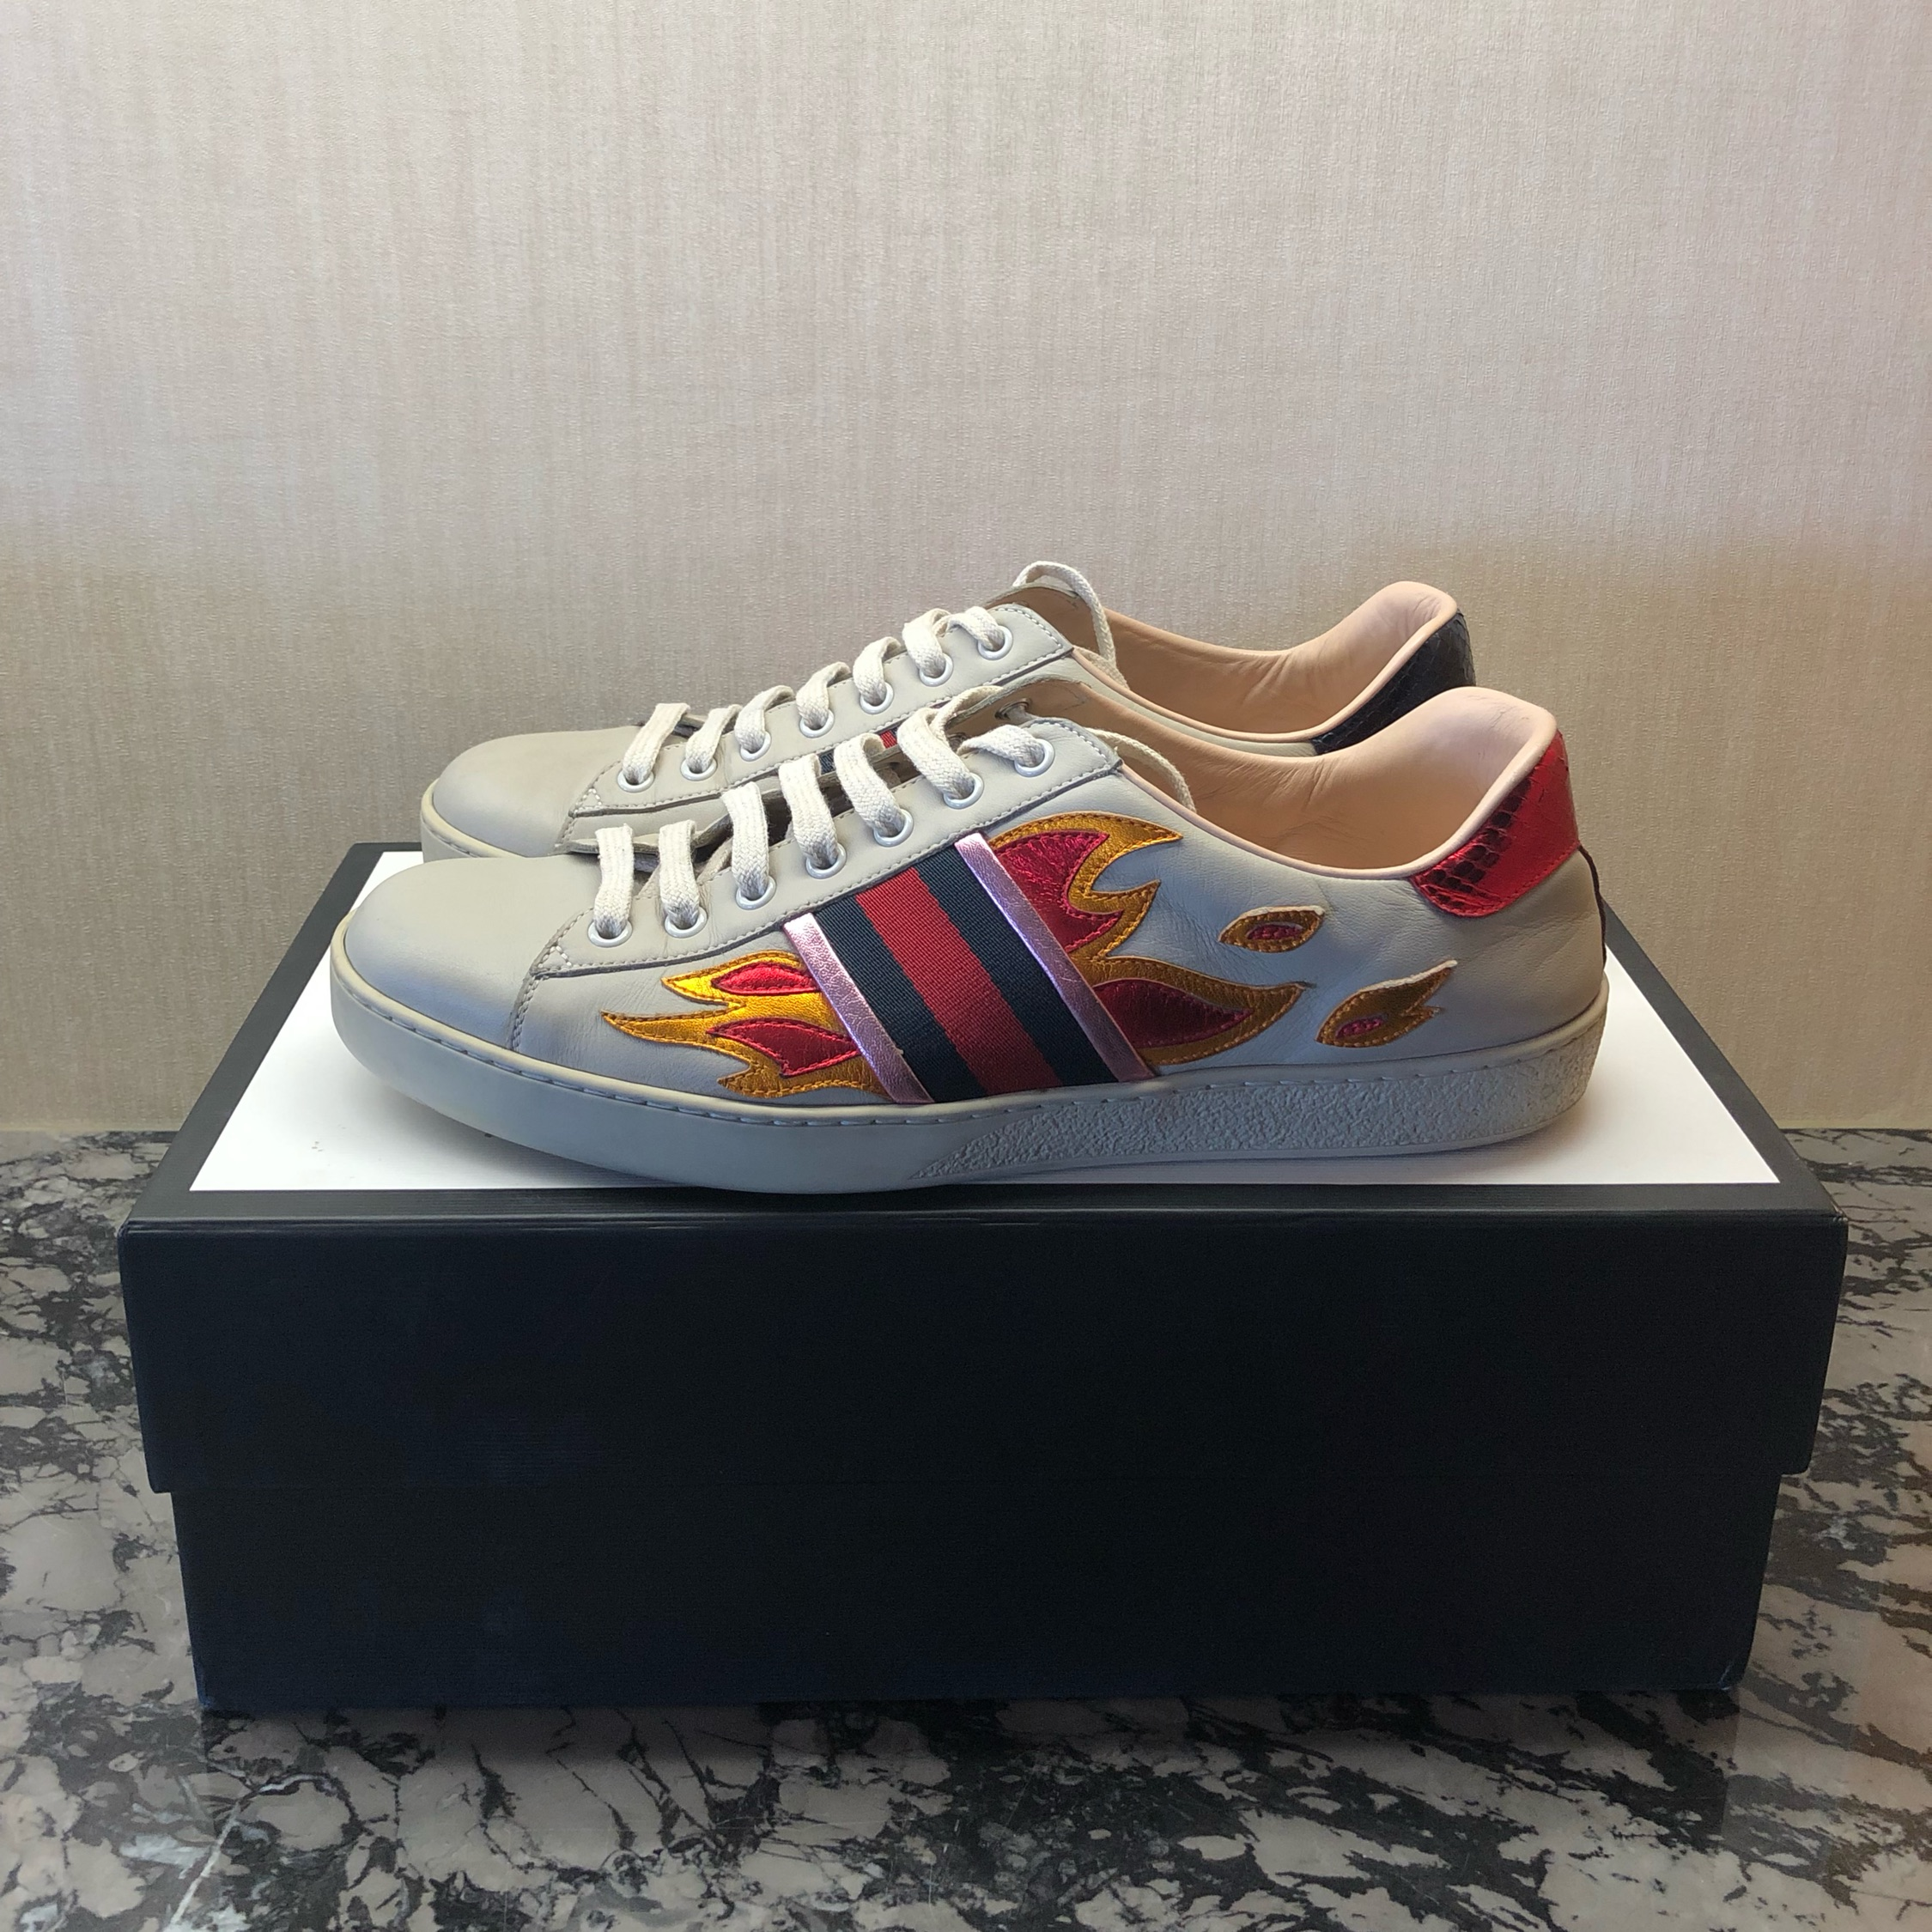 Gucci Ace Flame